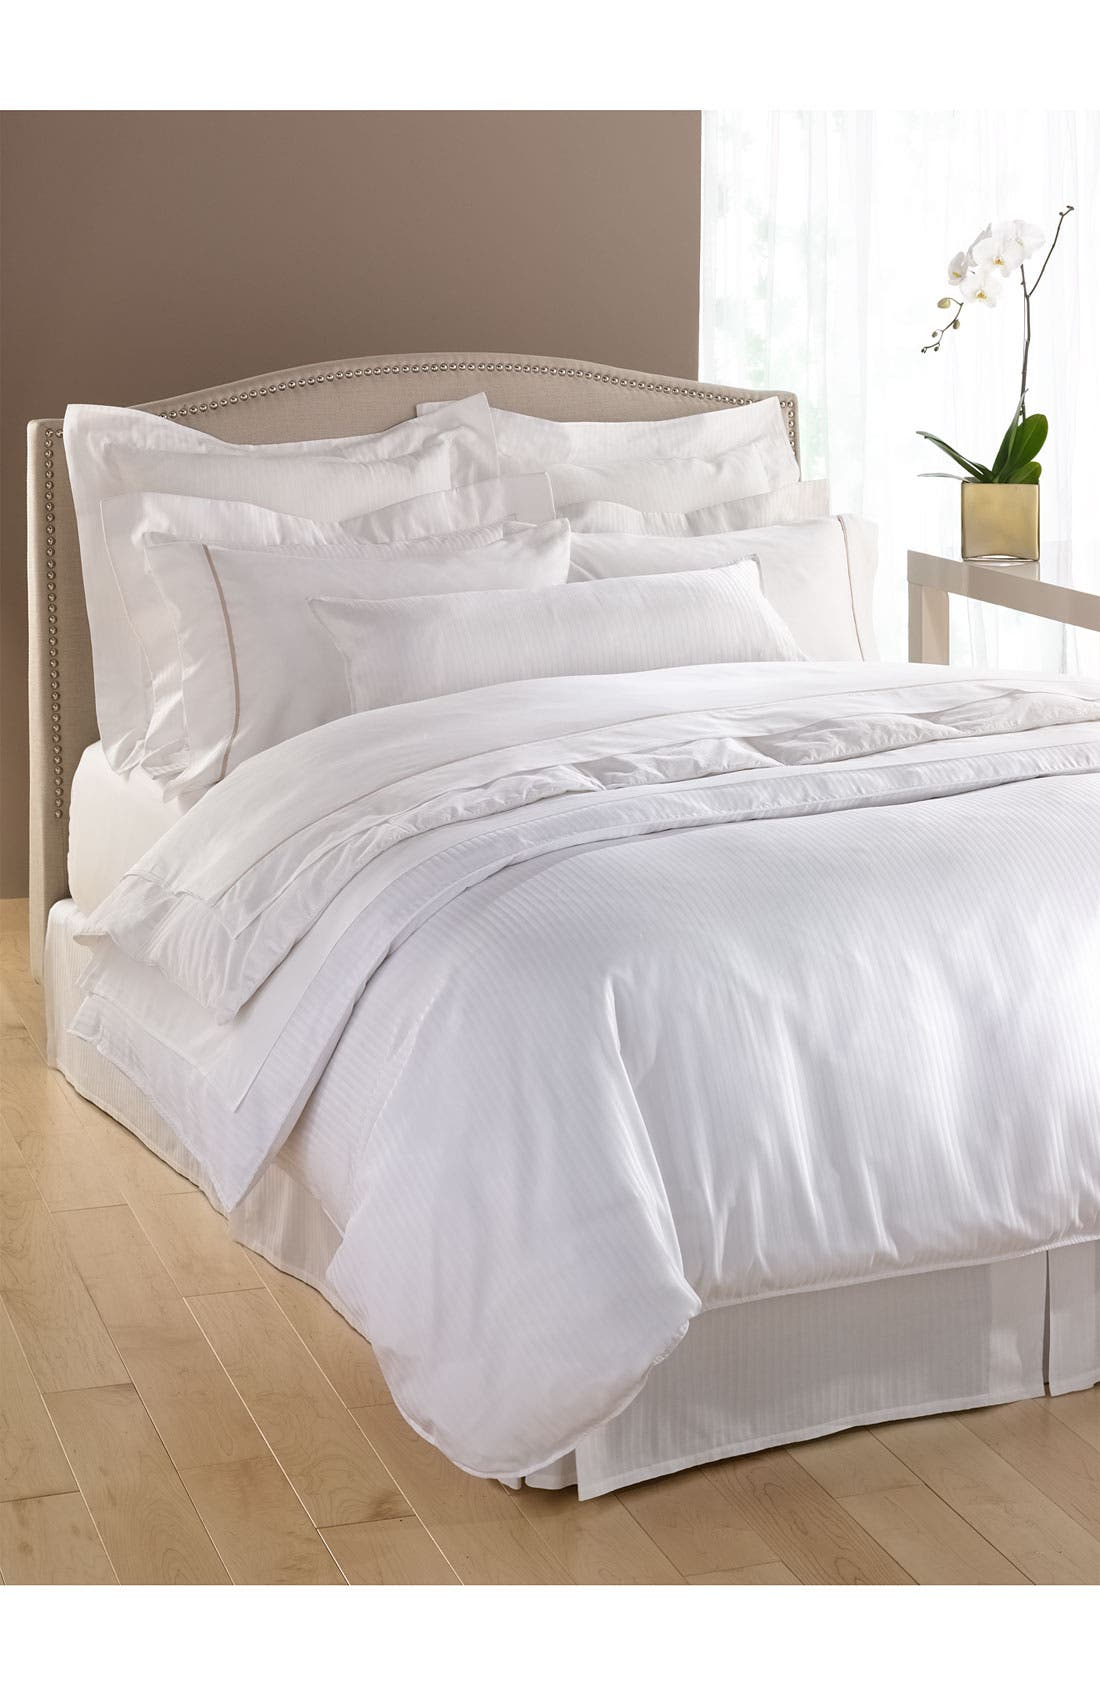 Westin Heavenly Bed<sup>®</sup> 300 Thread Count Egyptian Cotton Luxe Pillowcase,                             Alternate thumbnail 2, color,                             WHI